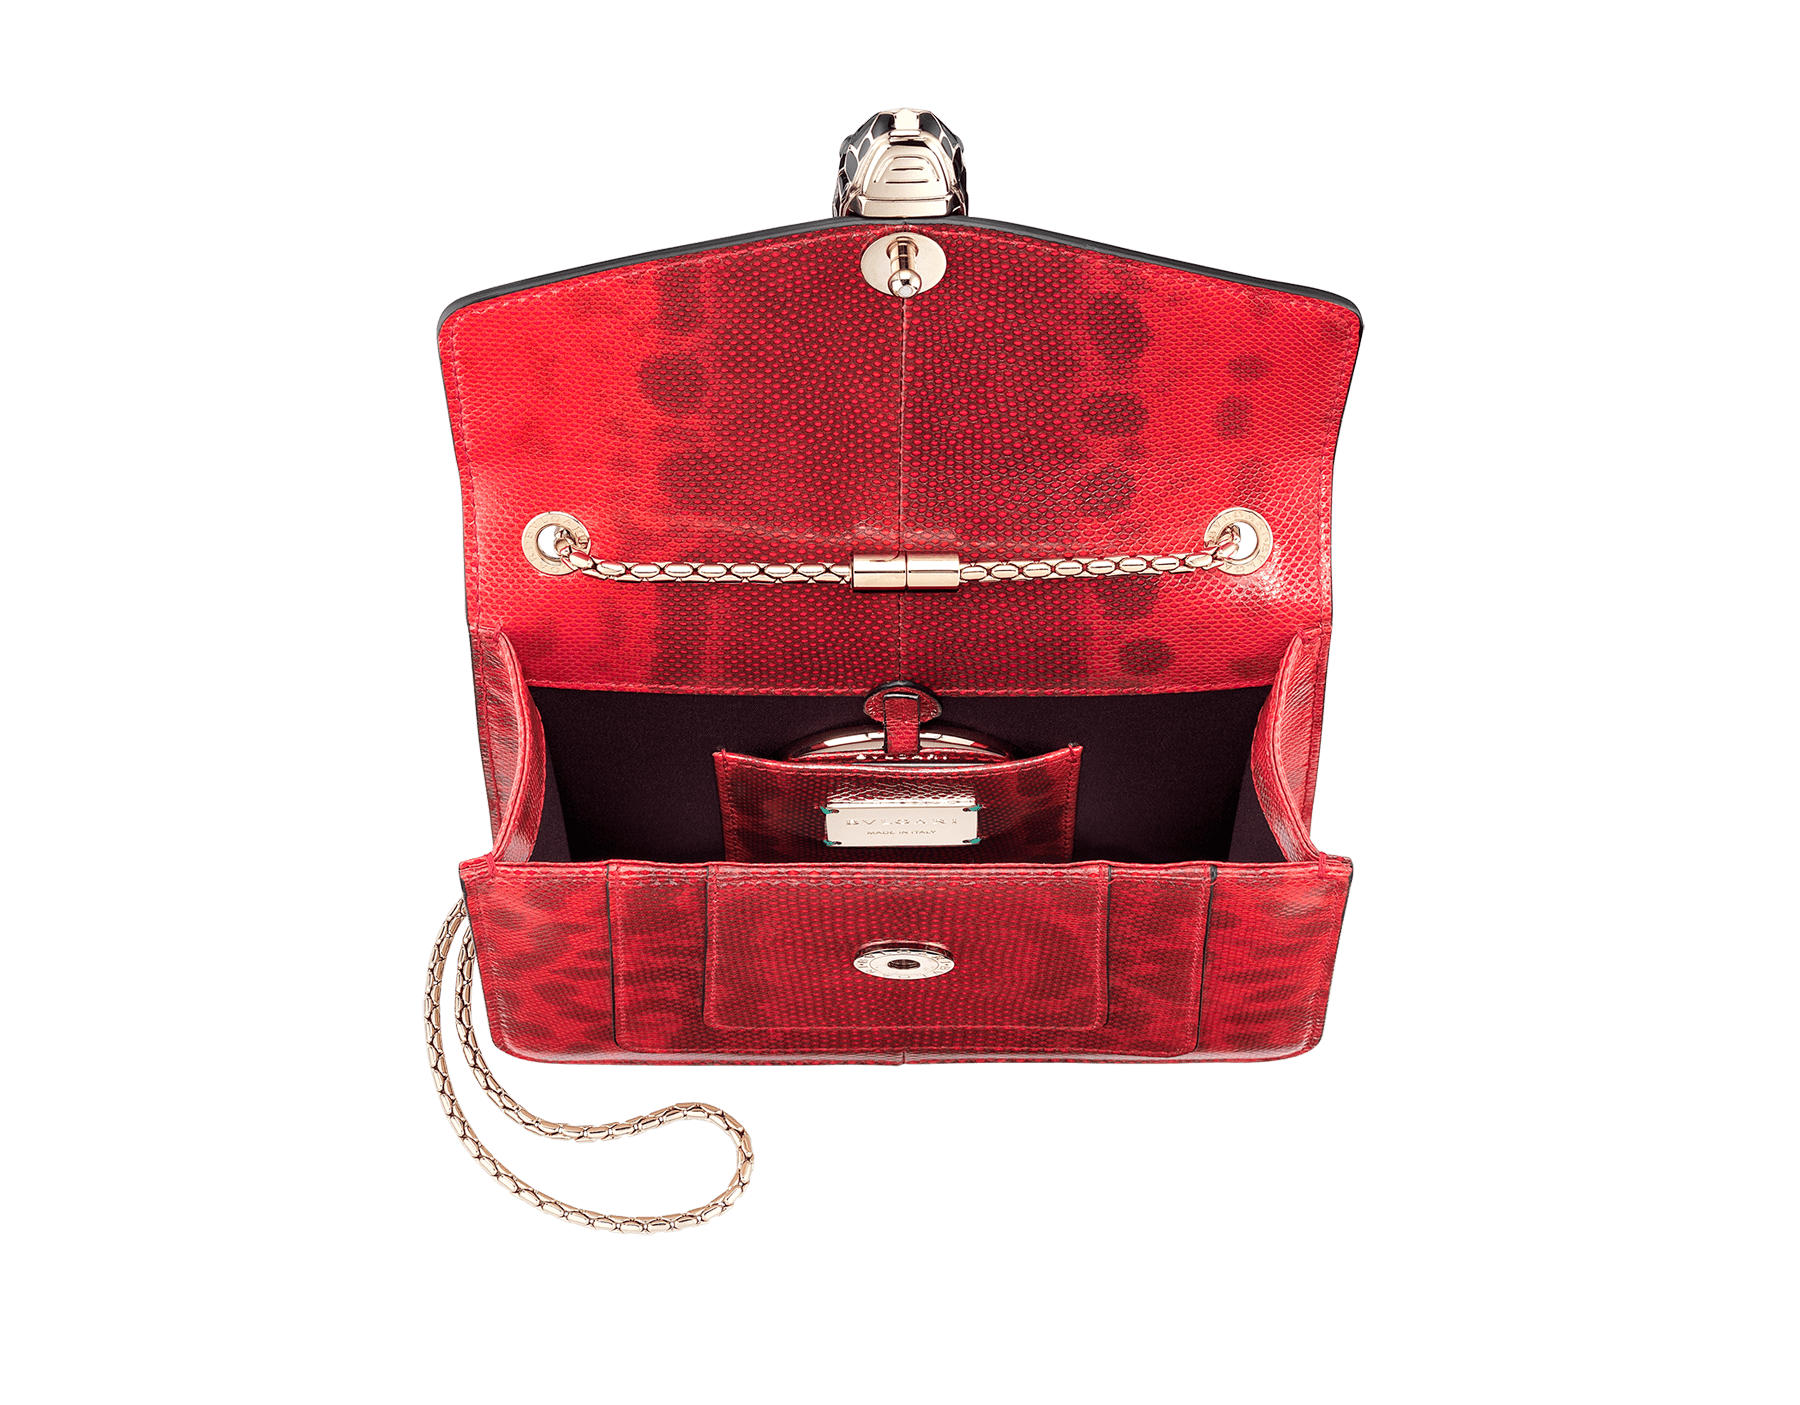 Serpenti Forever crossbody bag in sea star coral shiny karung skin. Snakehead closure in light gold plated brass decorated with black and white enamel, and green malachite eyes. 287911 image 4